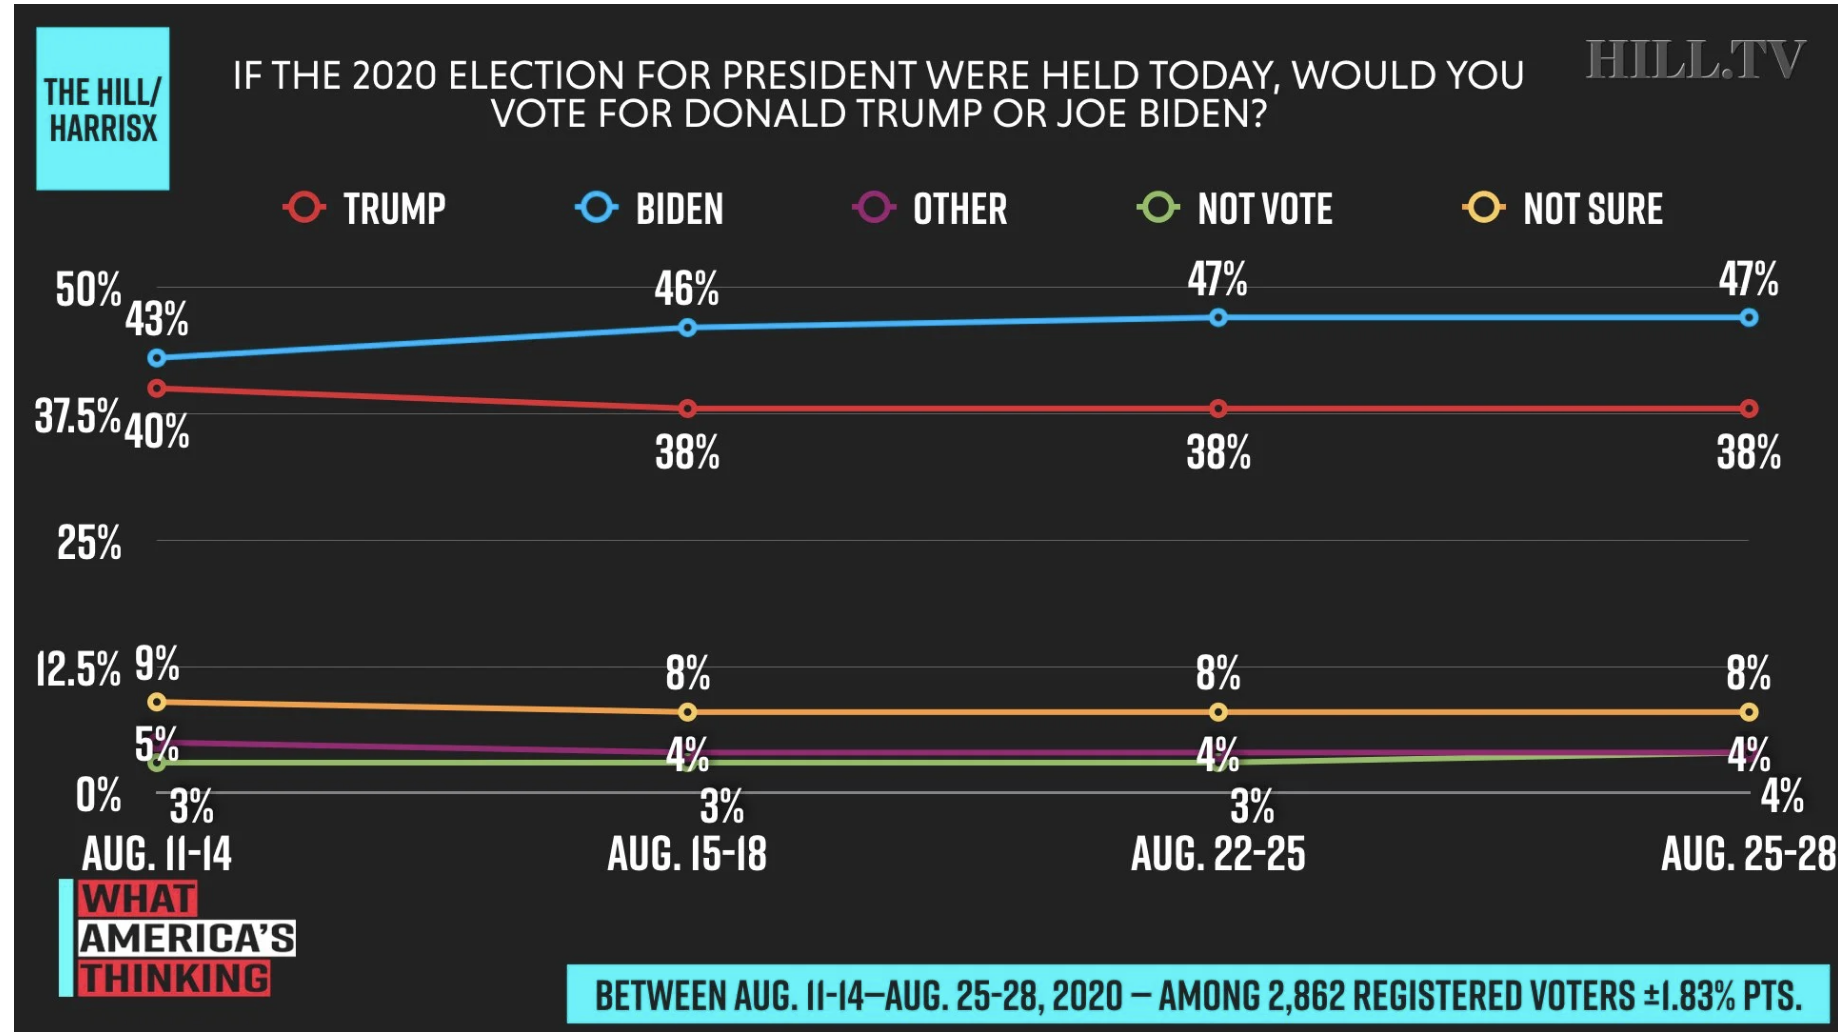 Screen-Shot-2020-08-31-at-4.04.52-PM New Trump Vs Biden 2020 Poll Shows Impressive 9-Point Surge Election 2020 Featured Politics Polls Top Stories